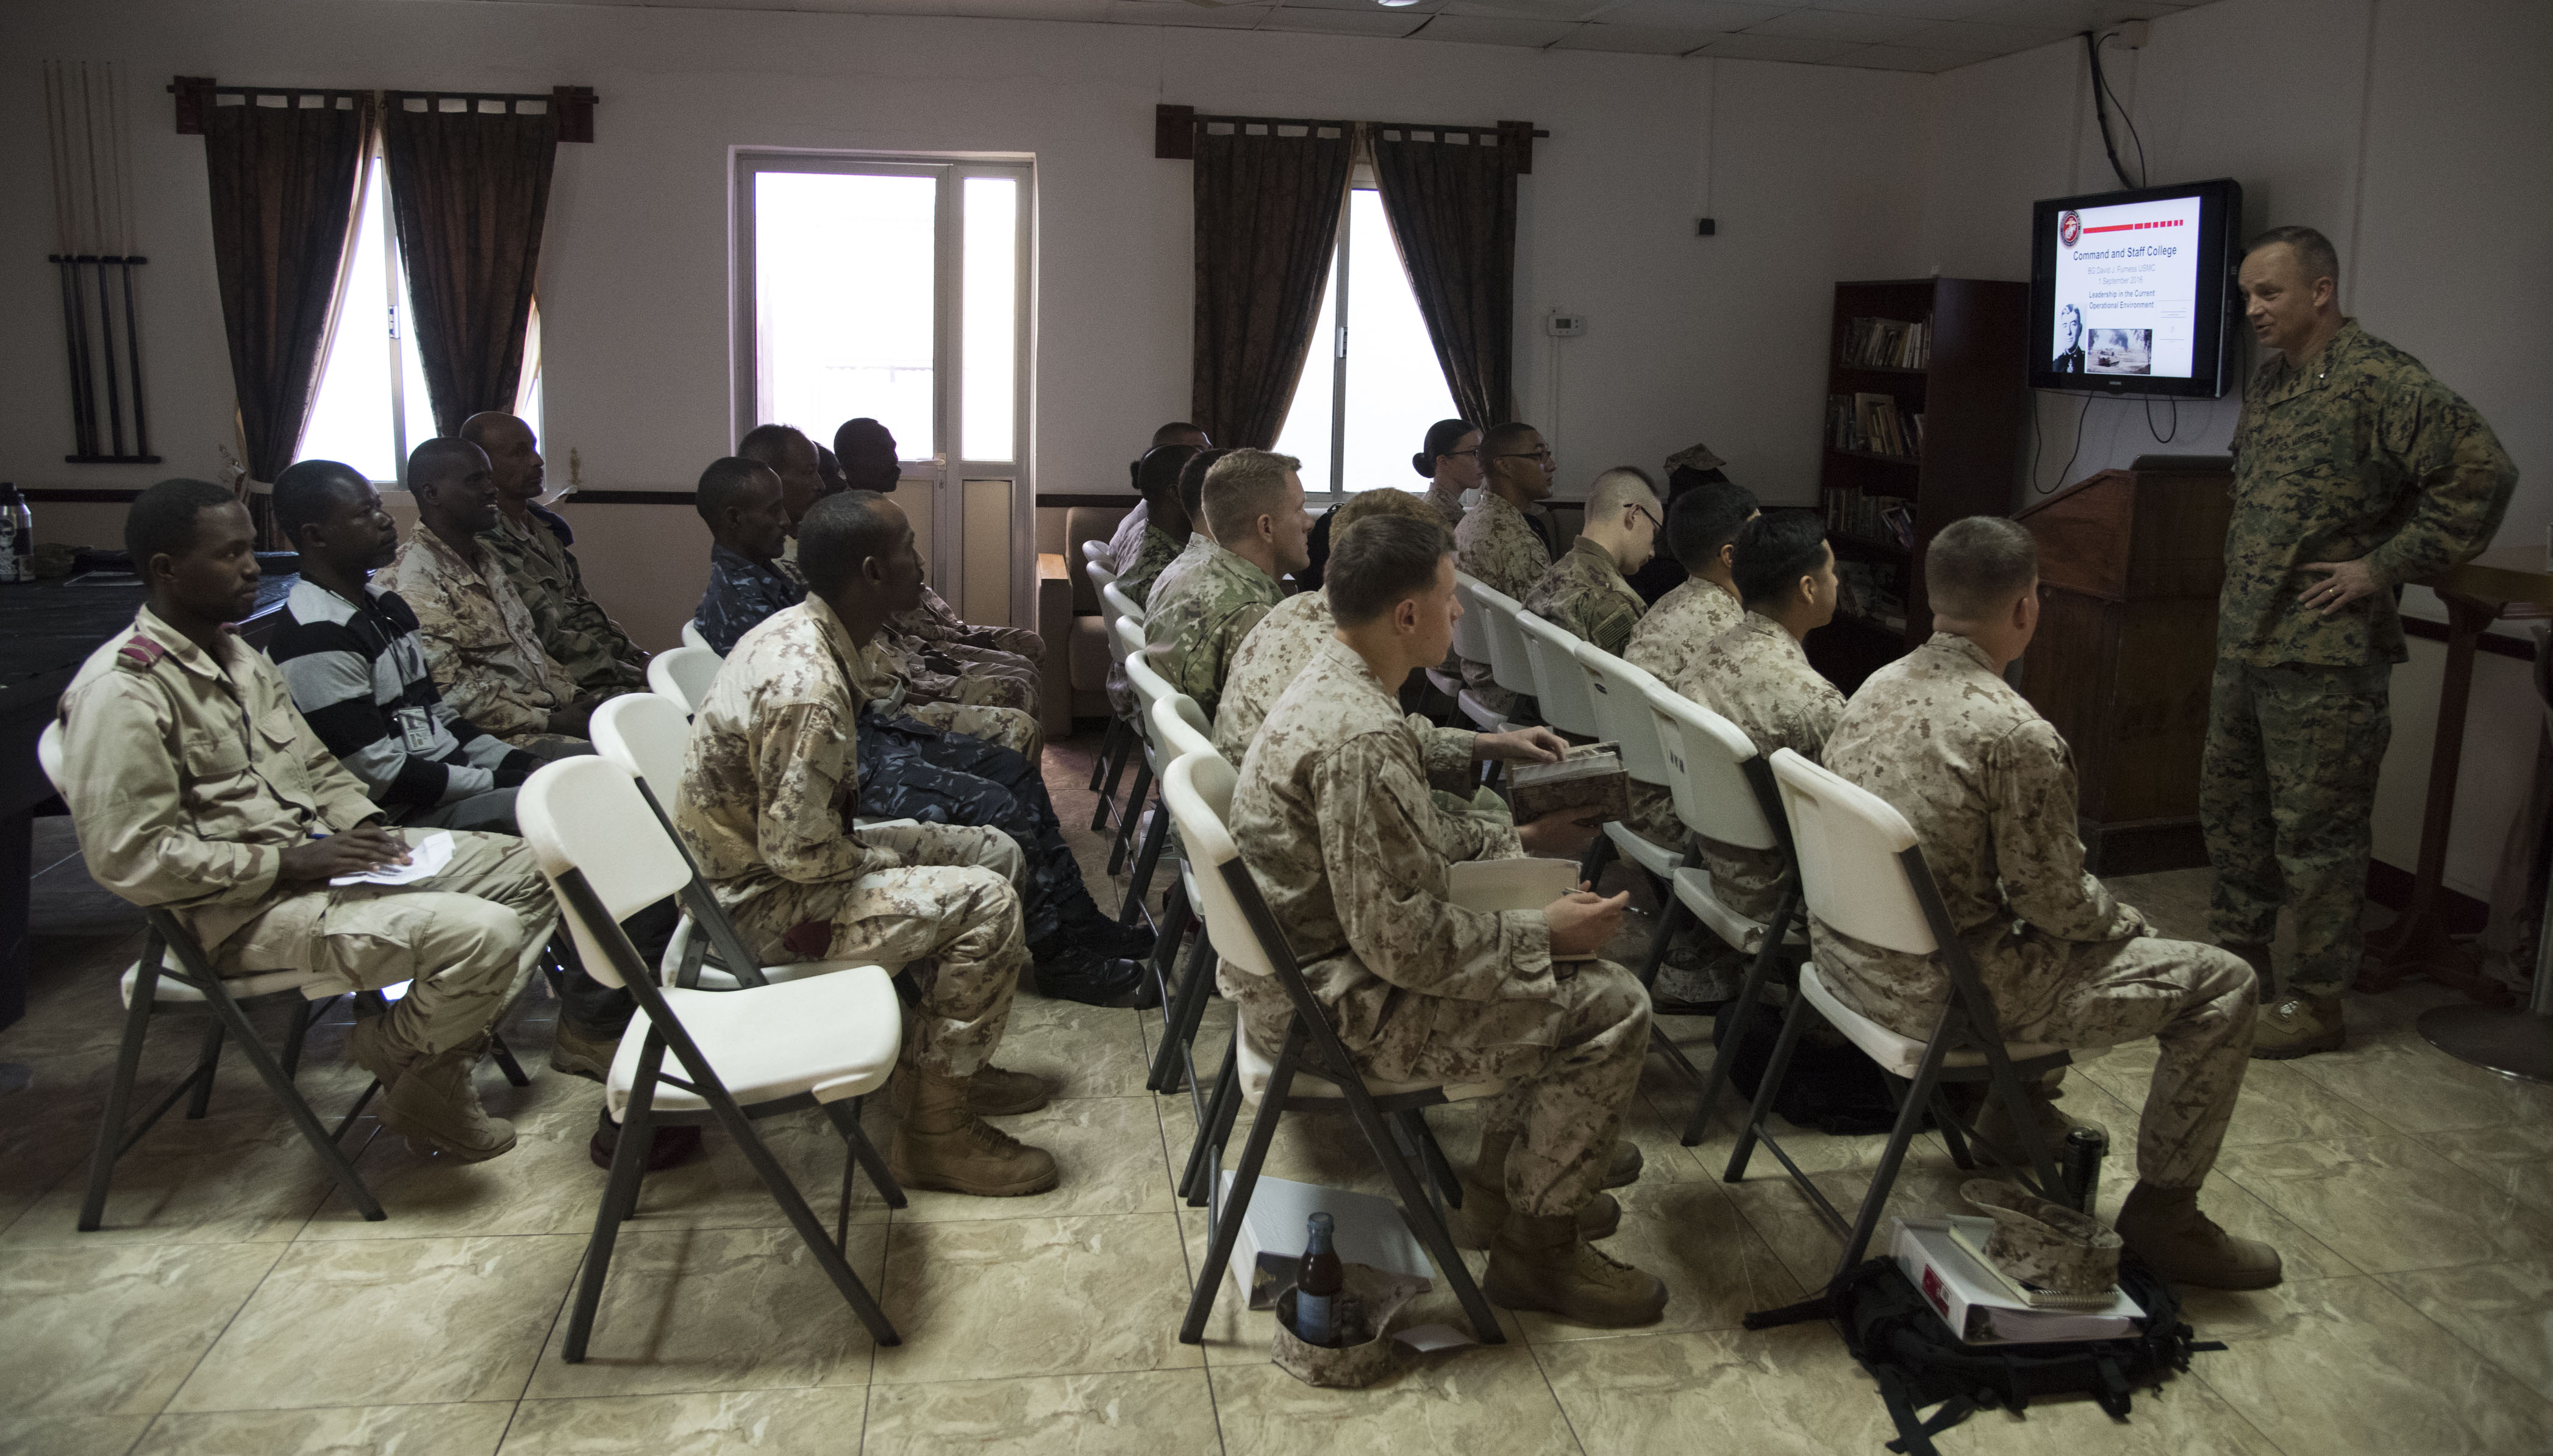 U.S. Marine Corps Brigadier General David Furness, commander of Combined Joint Task Force – Horn of Africa, speaks to U.S. and Djiboutian students about leadership as part of a Joint Corporals Course hosted by Combined Joint Task Force – Horn of Africa at Camp Lemonnier, Jan. 23, 2018. The Joint Corporals Course is designed to provide junior service members with the knowledge and skills necessary to assume leadership roles of greater responsibility as a non-commissioned officer, as well as strengthen bonds between participating militaries. (U.S. Air National Guard photo by Staff Sgt. Allyson L. Manners)